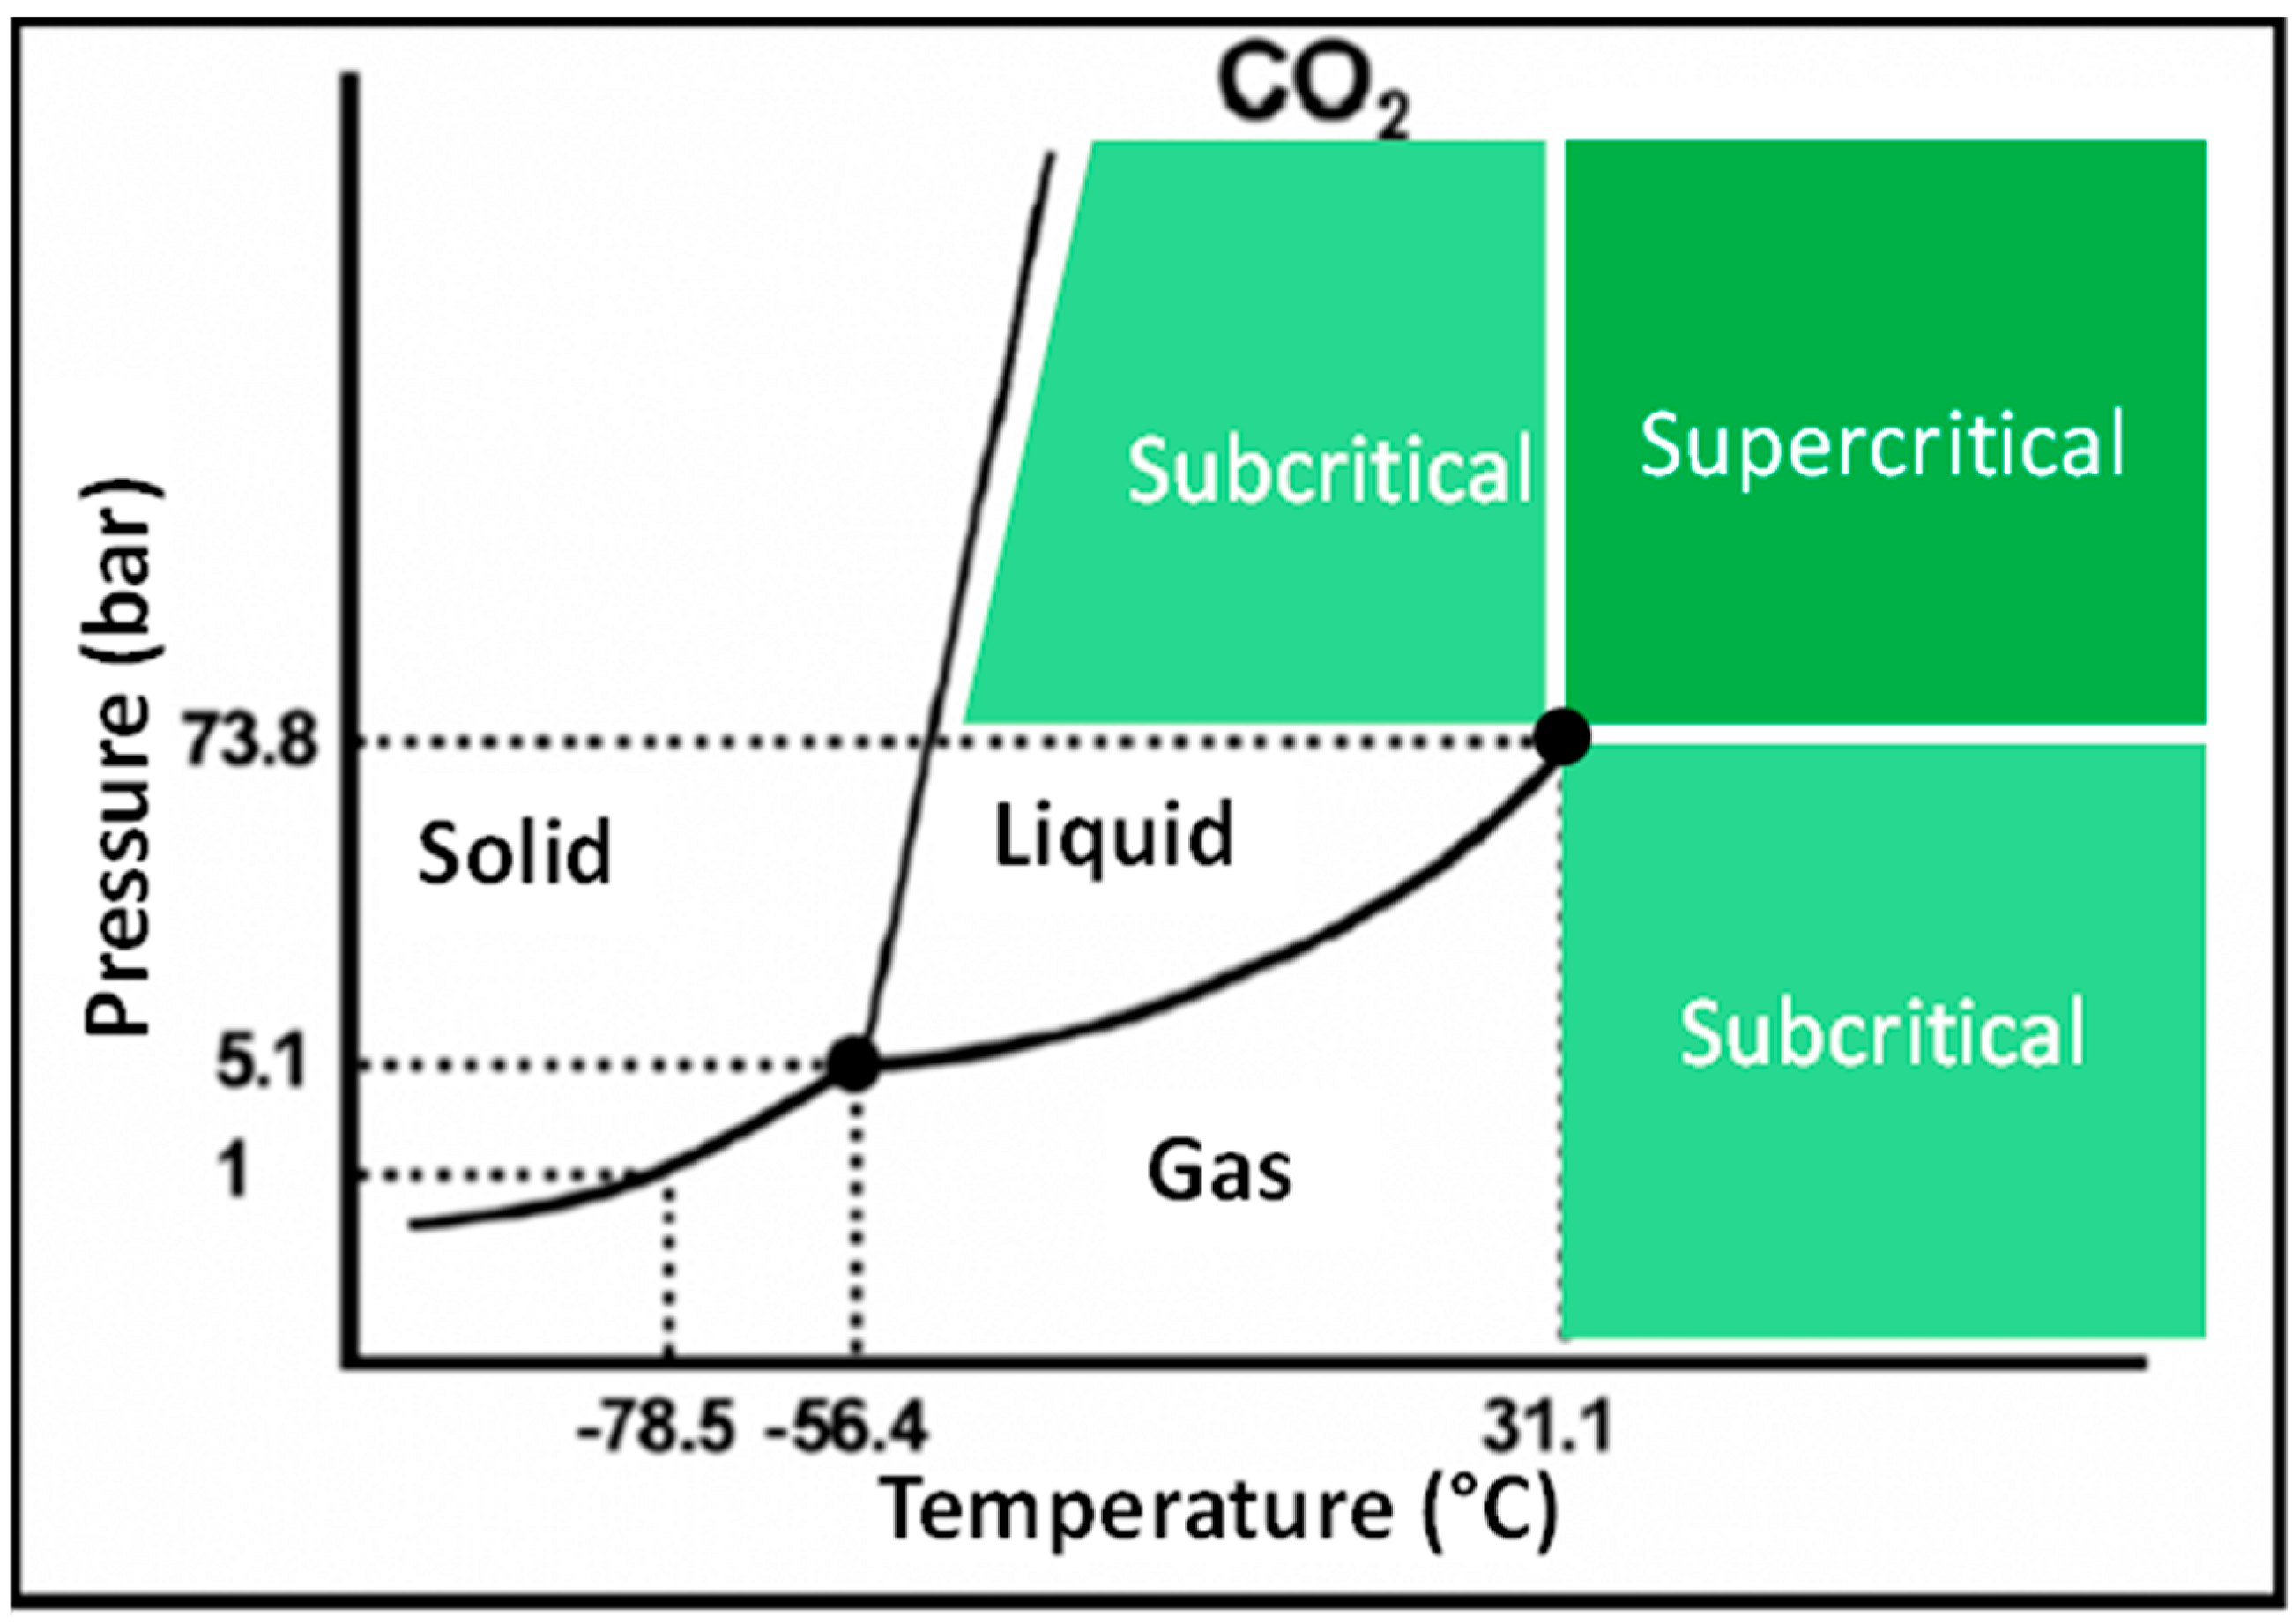 Supercritical Phase Diagram of CO2